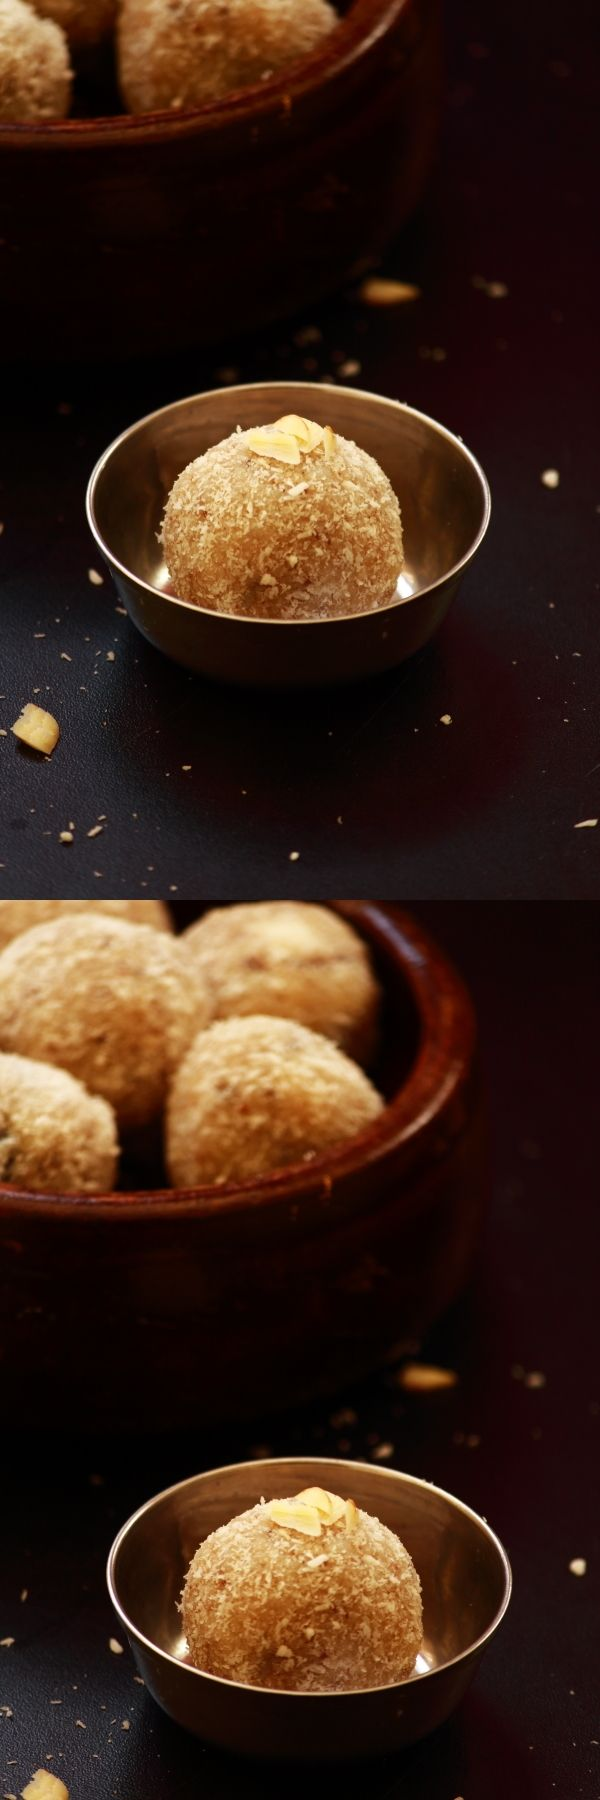 724 best vegetarian indian recipes images on pinterest indian food 10 min coconut ladoo tasty sweet recipe coconut ladoo is a tasty indian sweet recipe forumfinder Gallery